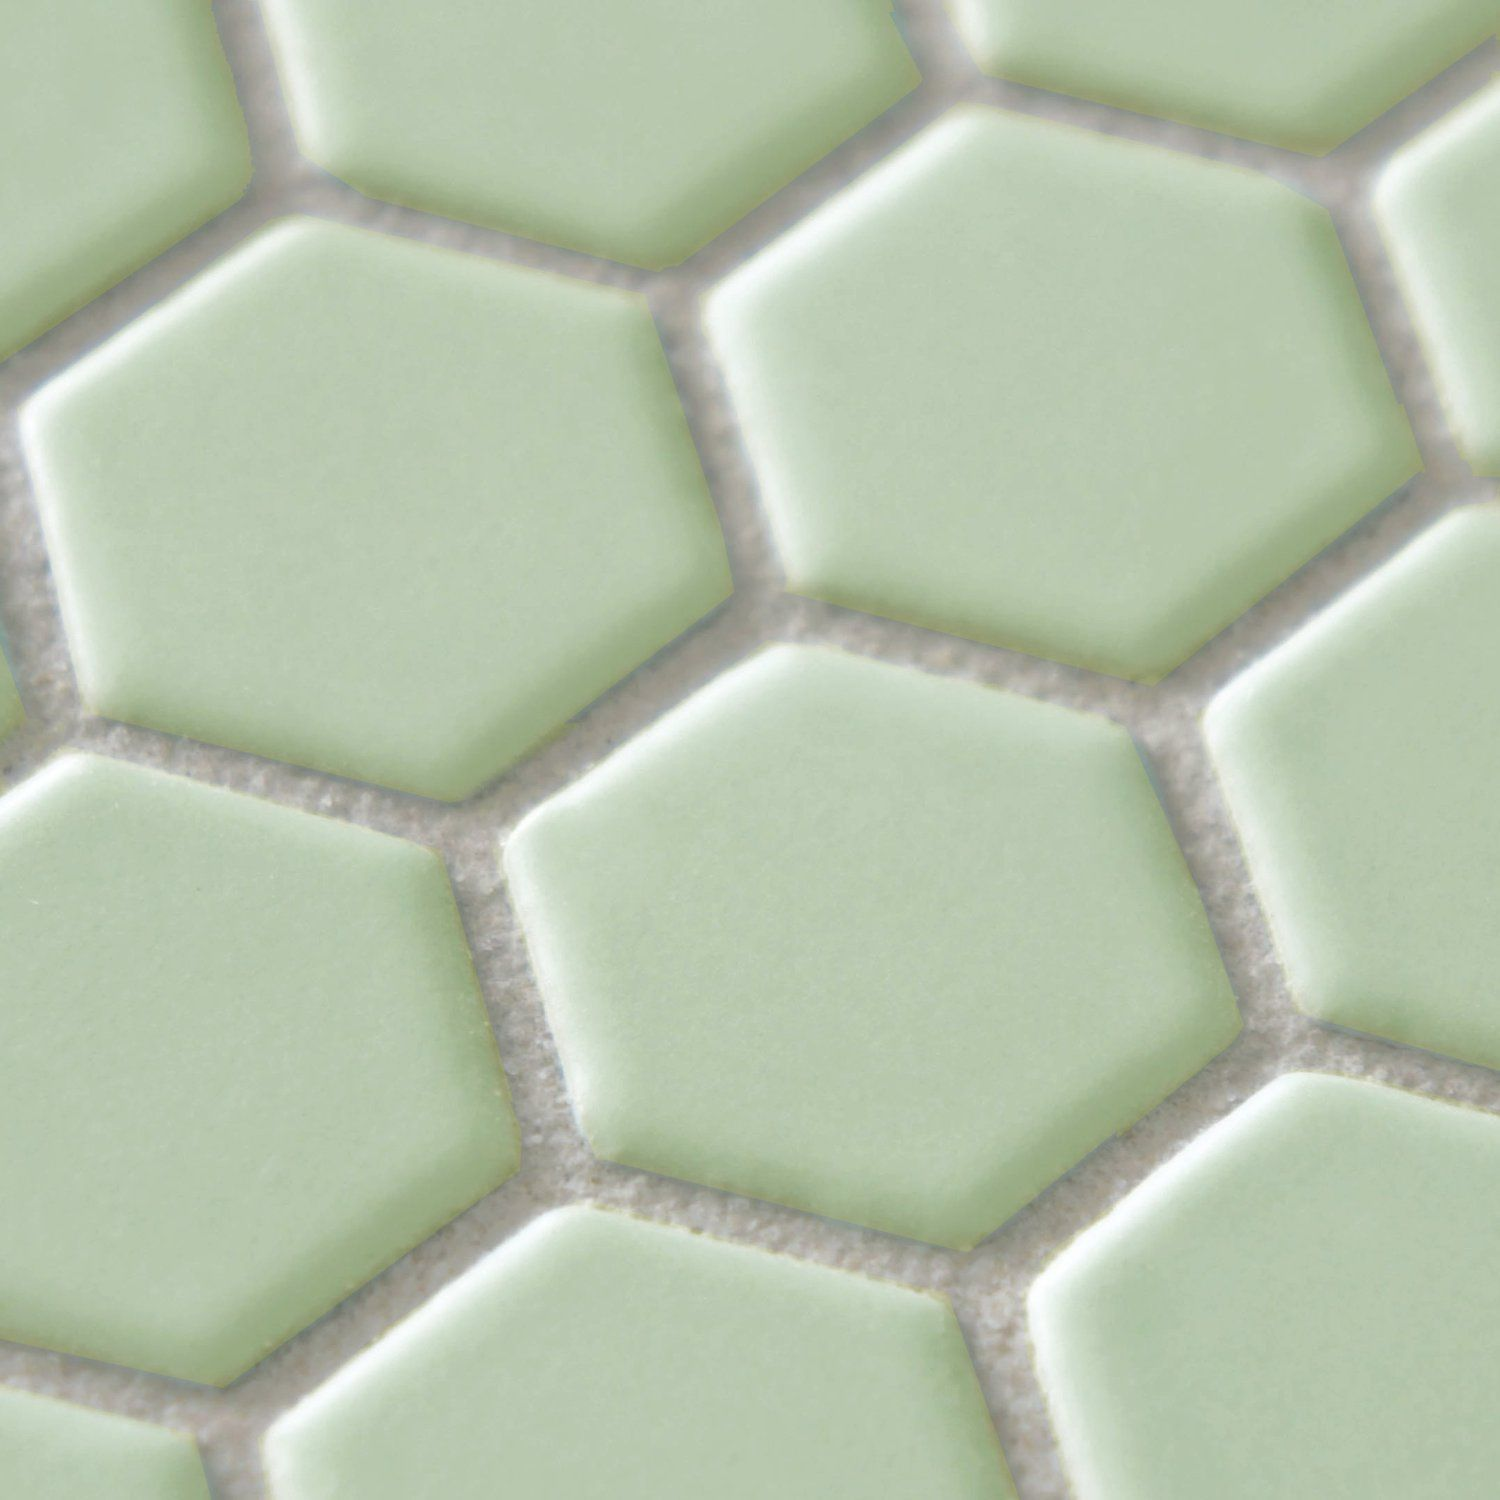 Retro Hex Matte Light Green 10 1 4 X 11 3 4 Inch Porcelain Floor Wall Tile 10 Pcs 8 4 Sq Ft Per Porcelain Mosaic Floor And Wall Tile Porcelain Mosaic Tile